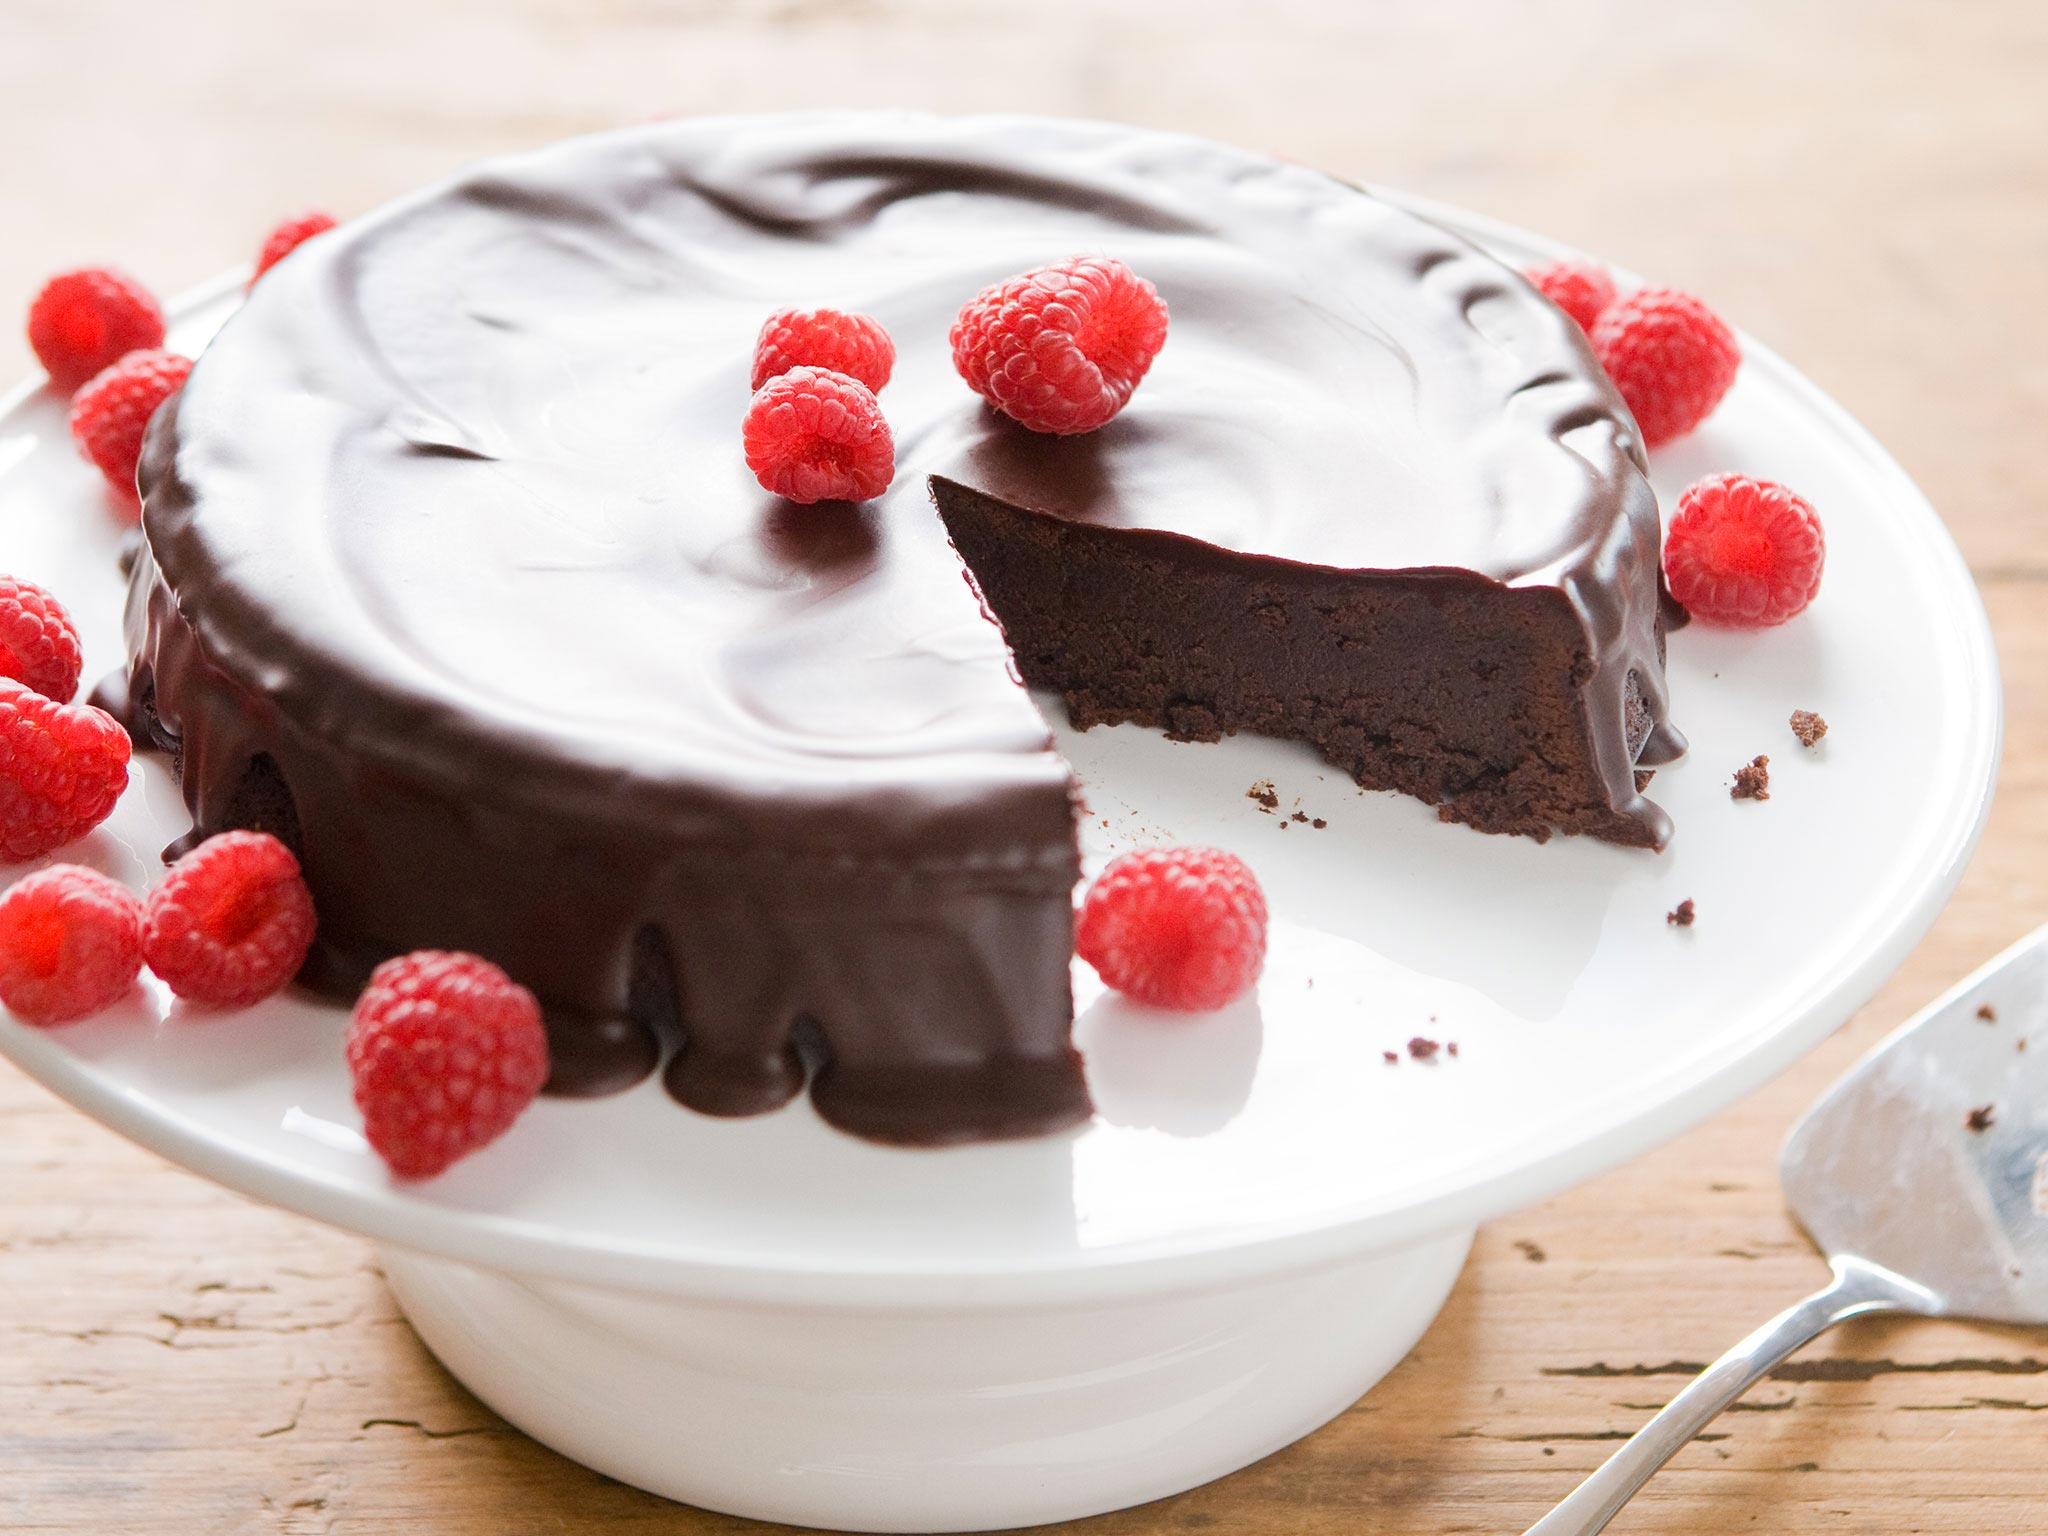 Recipe Flourless Chocolate Cake With Dark Chocolate Glaze Whole Foods Market